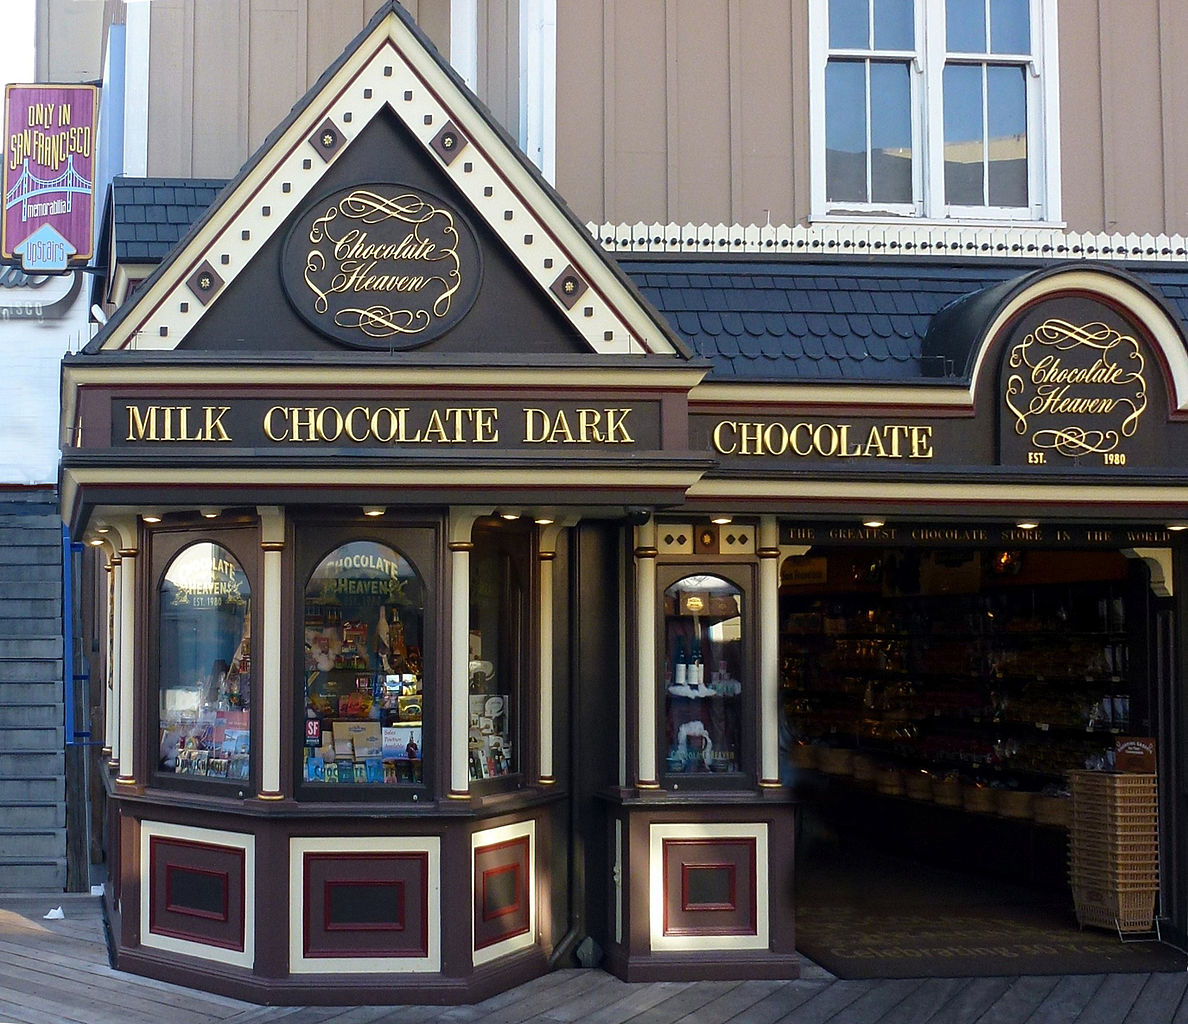 Chocolate Heaven at PIER 39 - photo by PIERRE ANDRE LECLERCQ under GFDL and CC-BY-SA-4.0,3.0,2.5,2.0,1.0